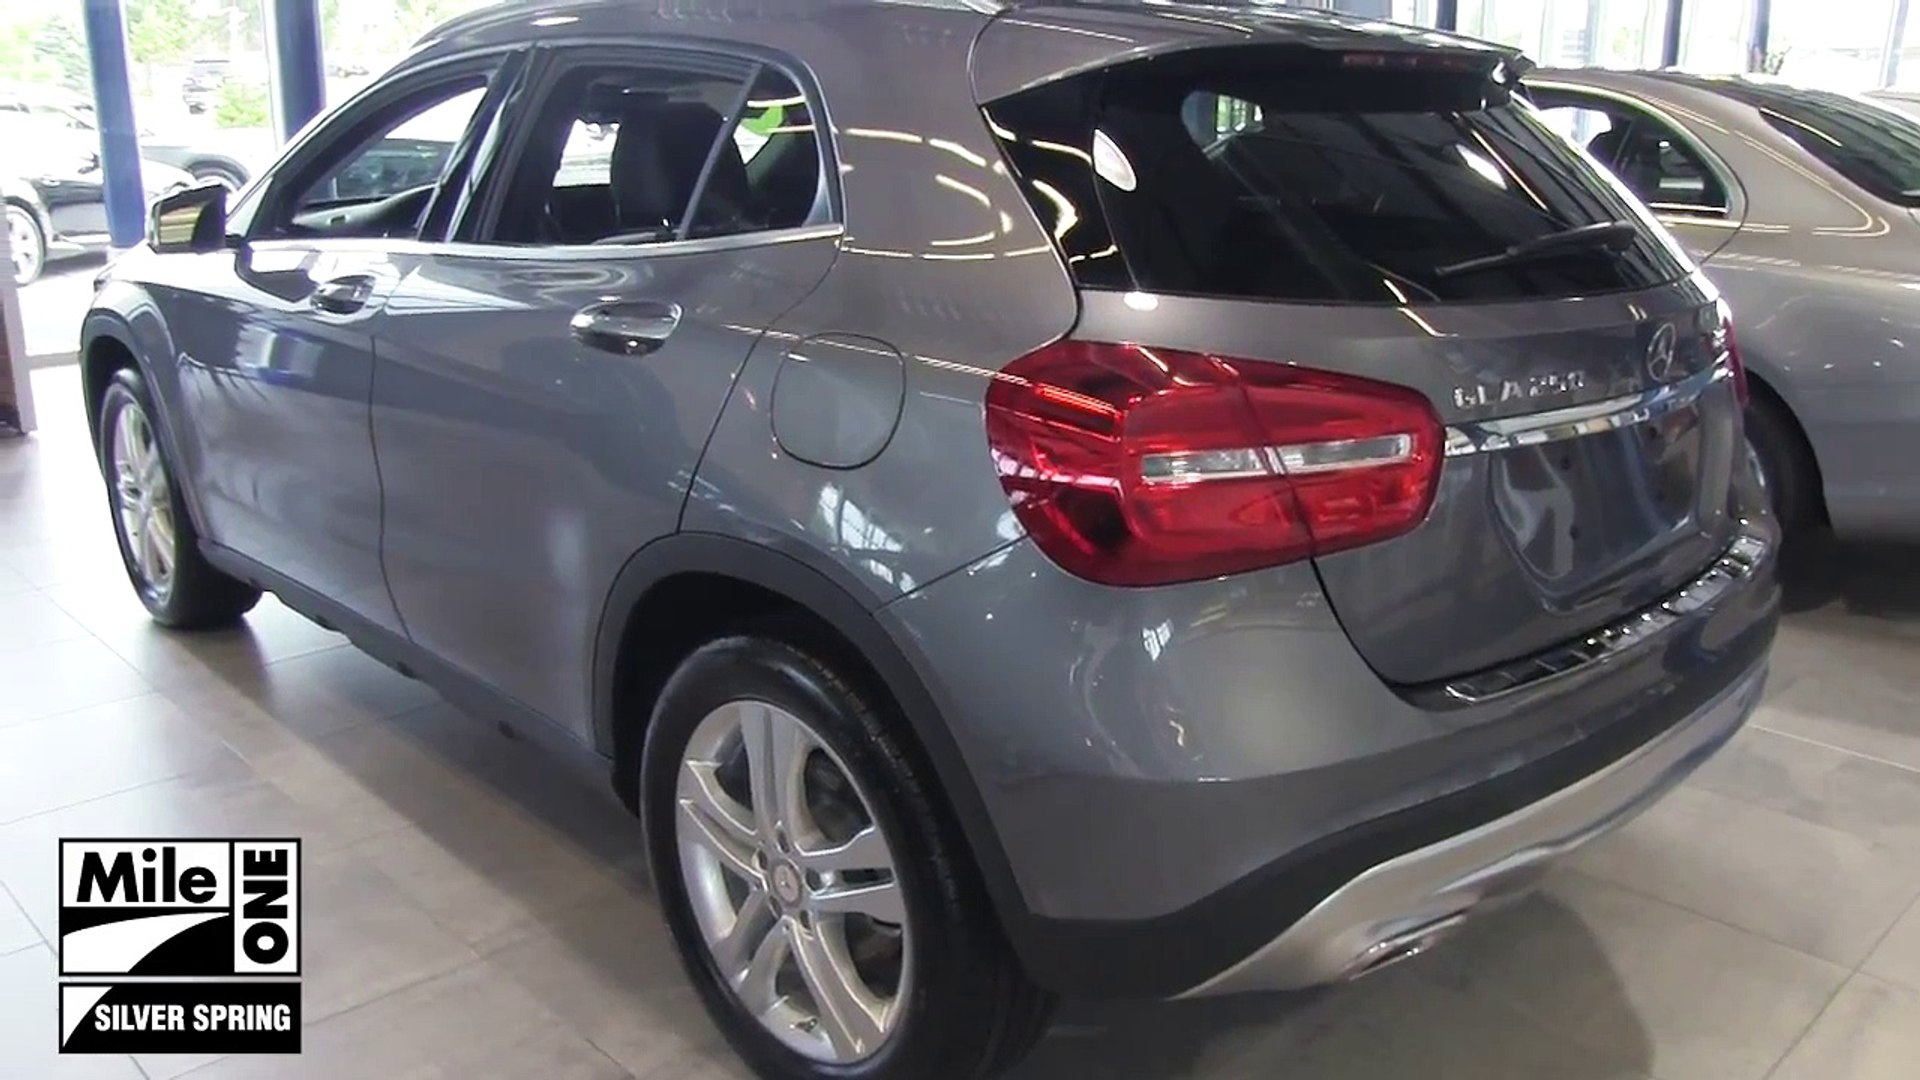 2015 Mercedes-Benz GLA250 4Matic at Mercedes-Benz of Silver Spring